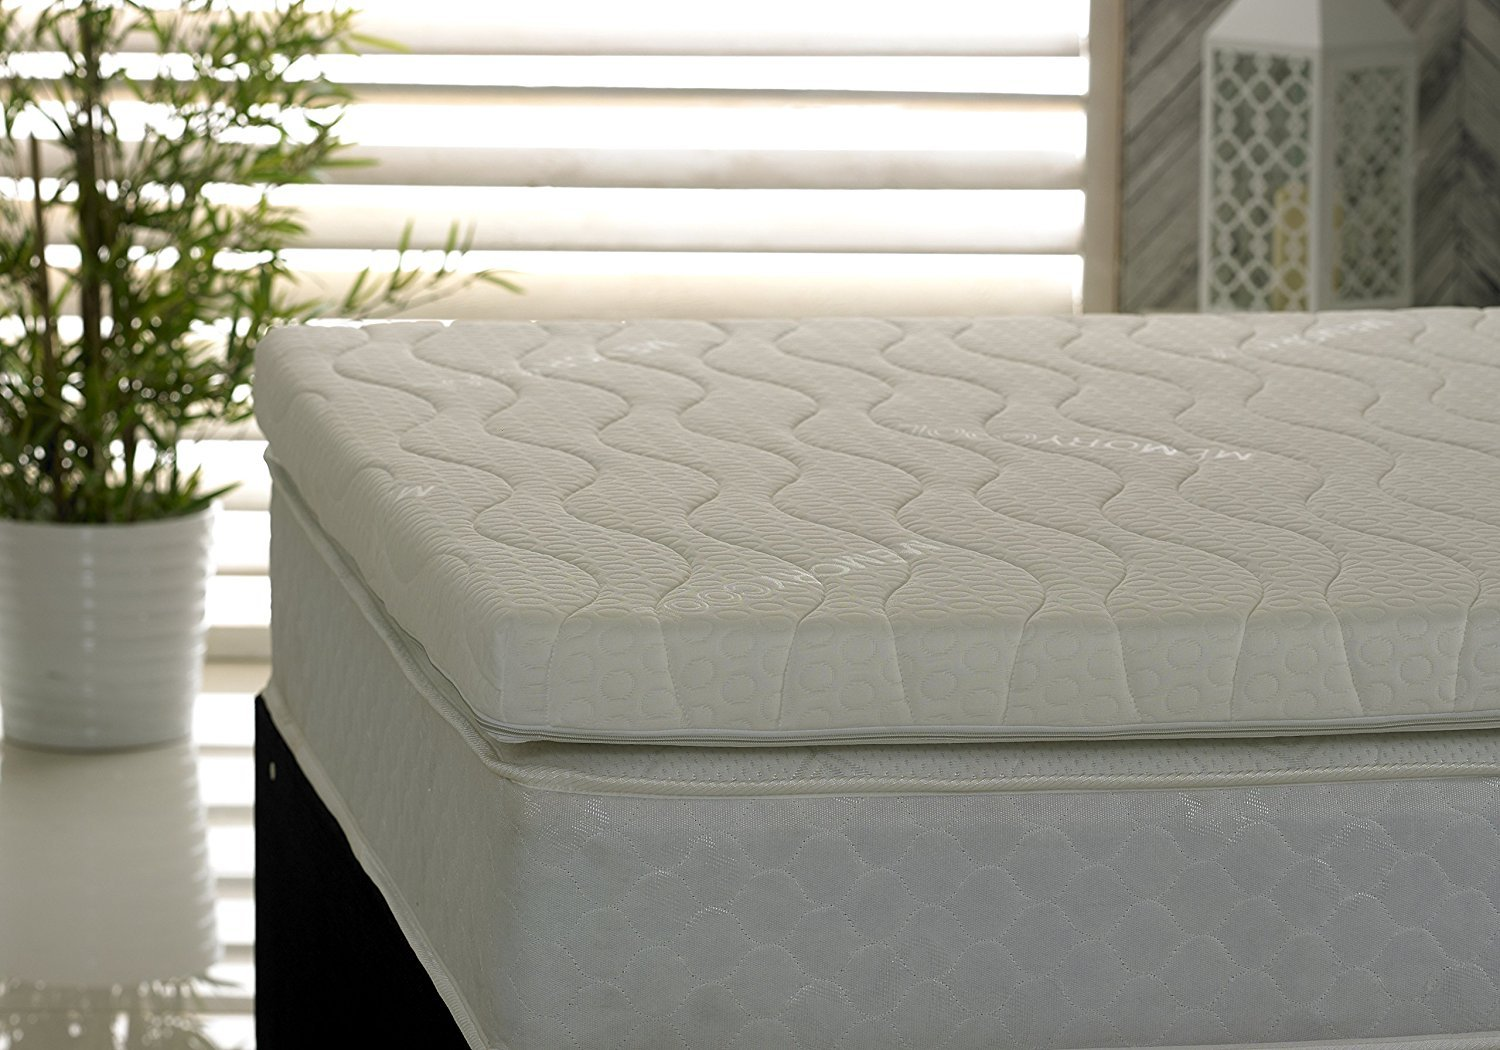 3-Inch UK King Visco Therapy Memory Foam Fibre Mattress Topper with Luxury Cover